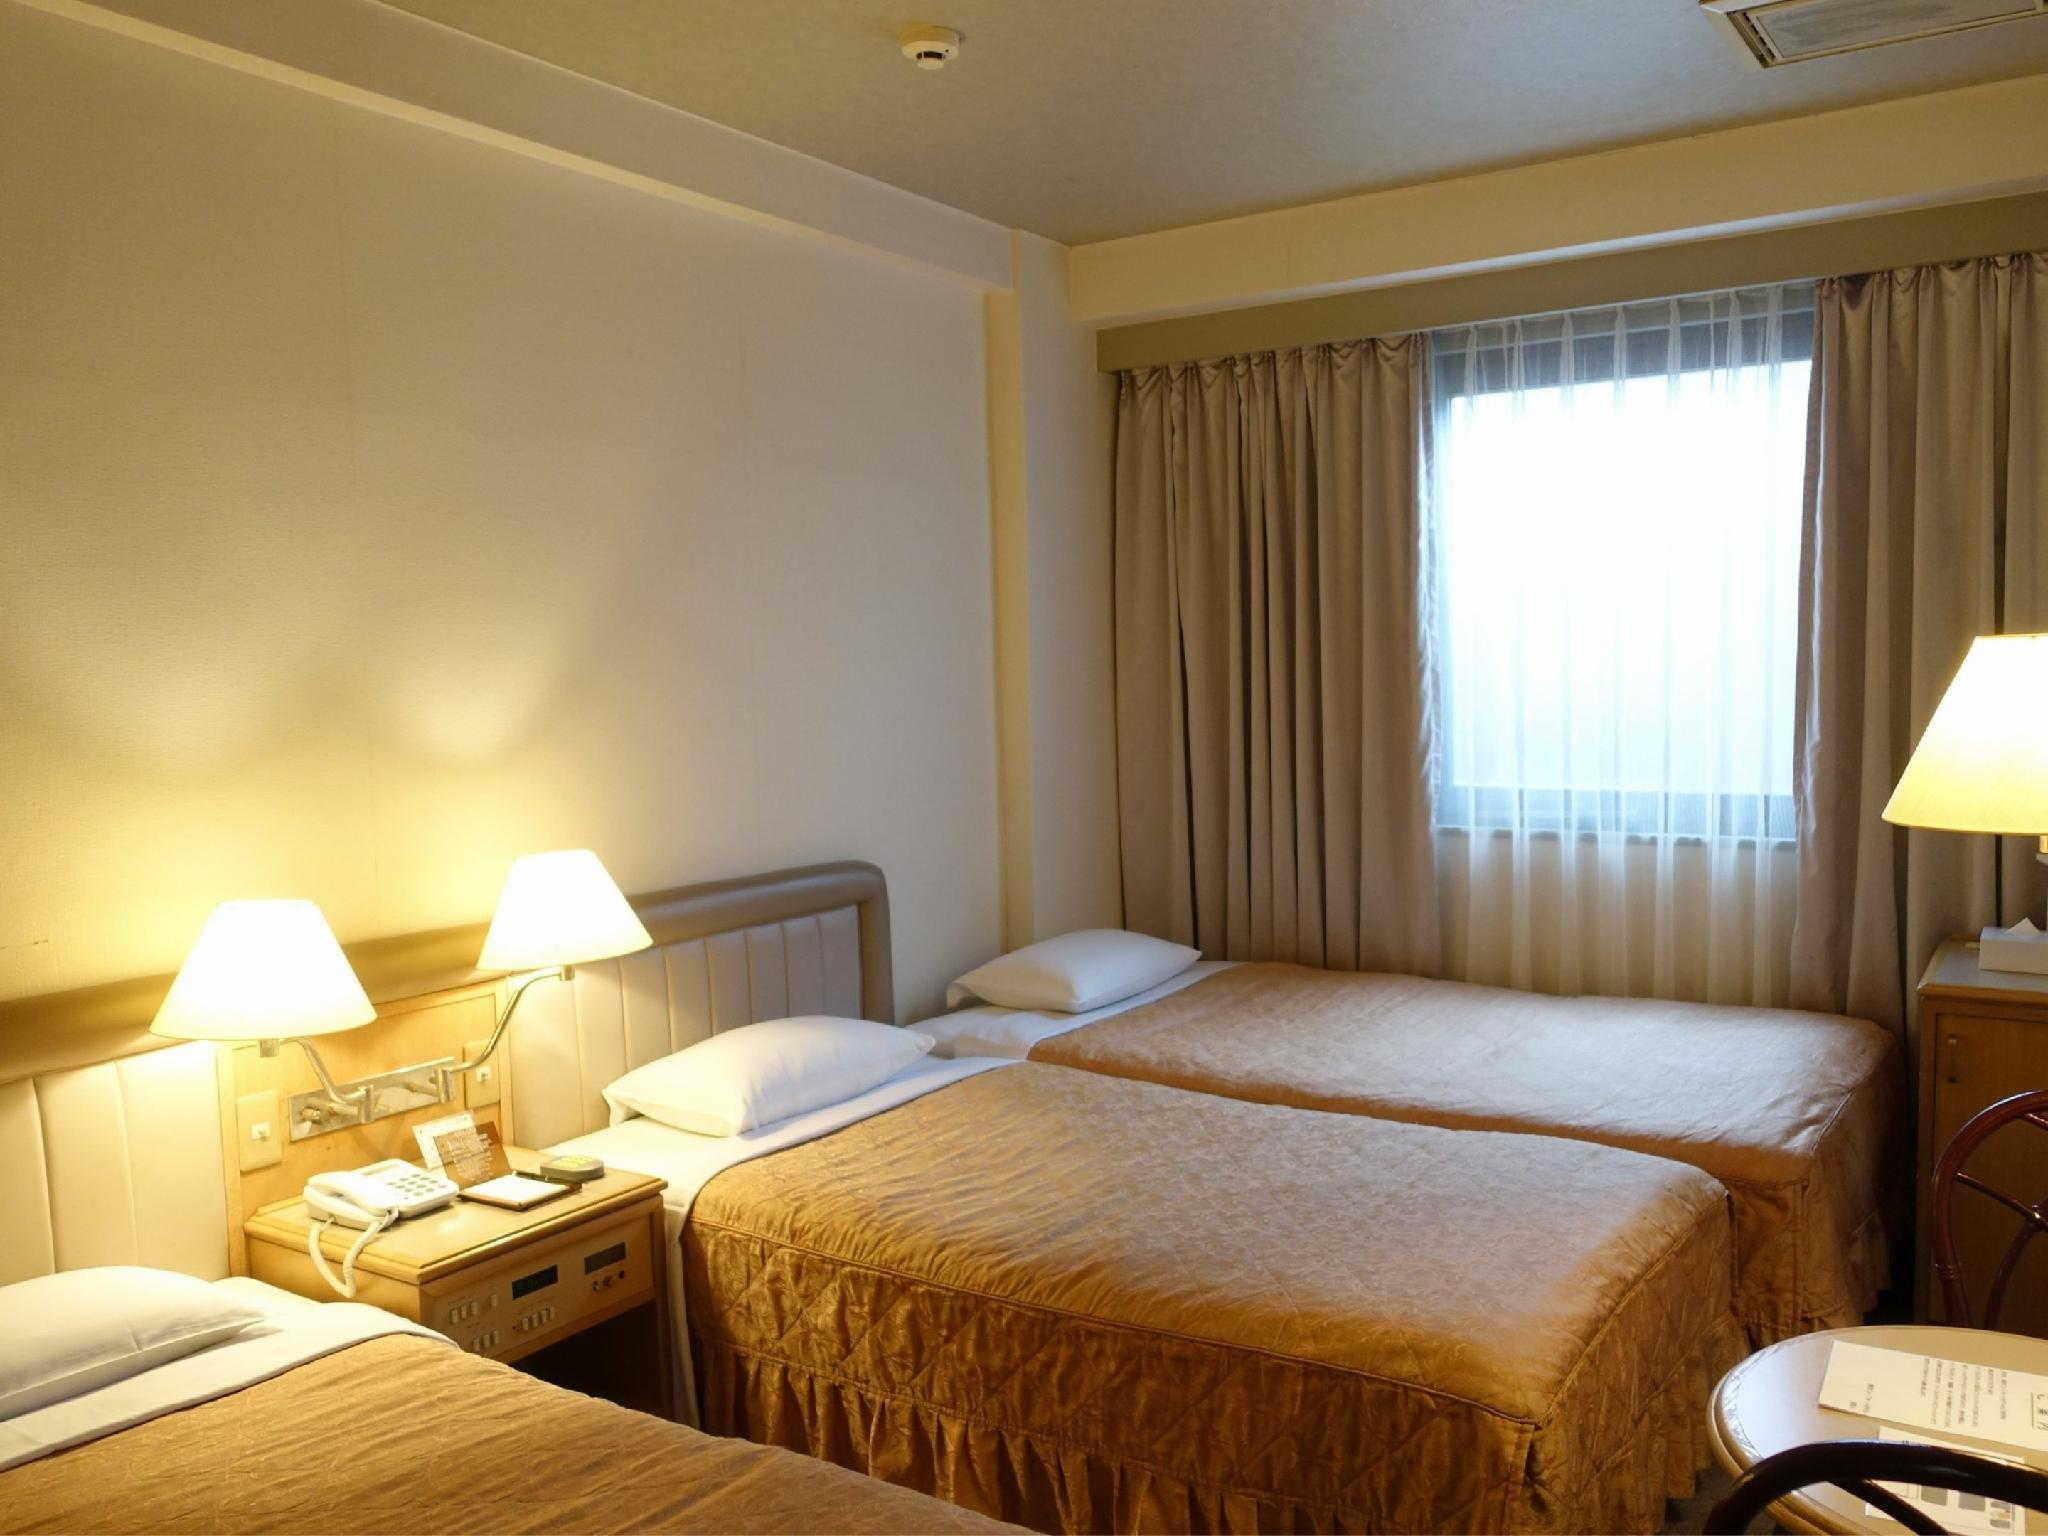 三人房 (Triple Room (2 Beds + 1 Extra Bed))